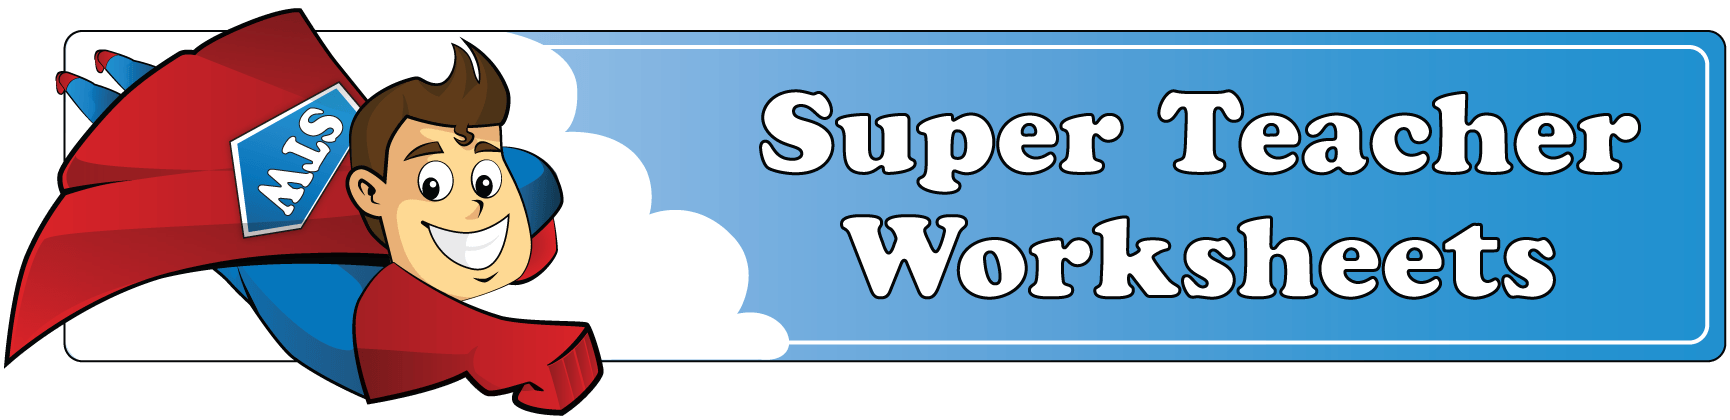 Log In to Super Teacher Worksheets – Superteacher Worksheets